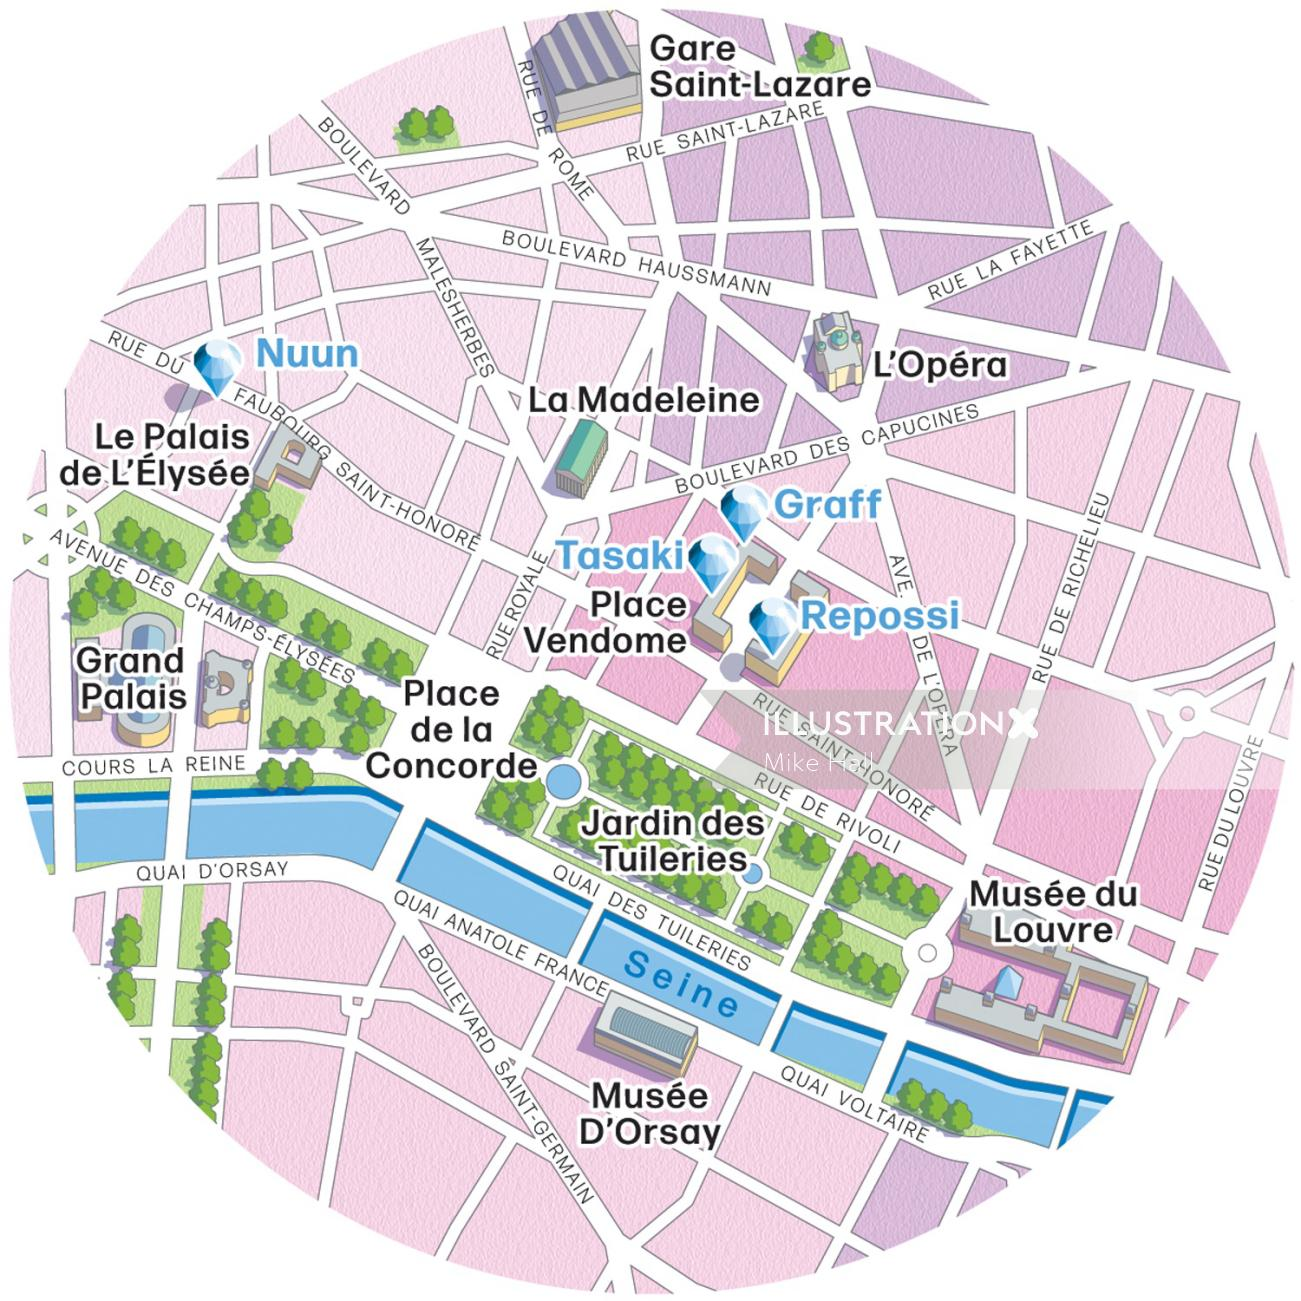 Paris boutiques illustrated map